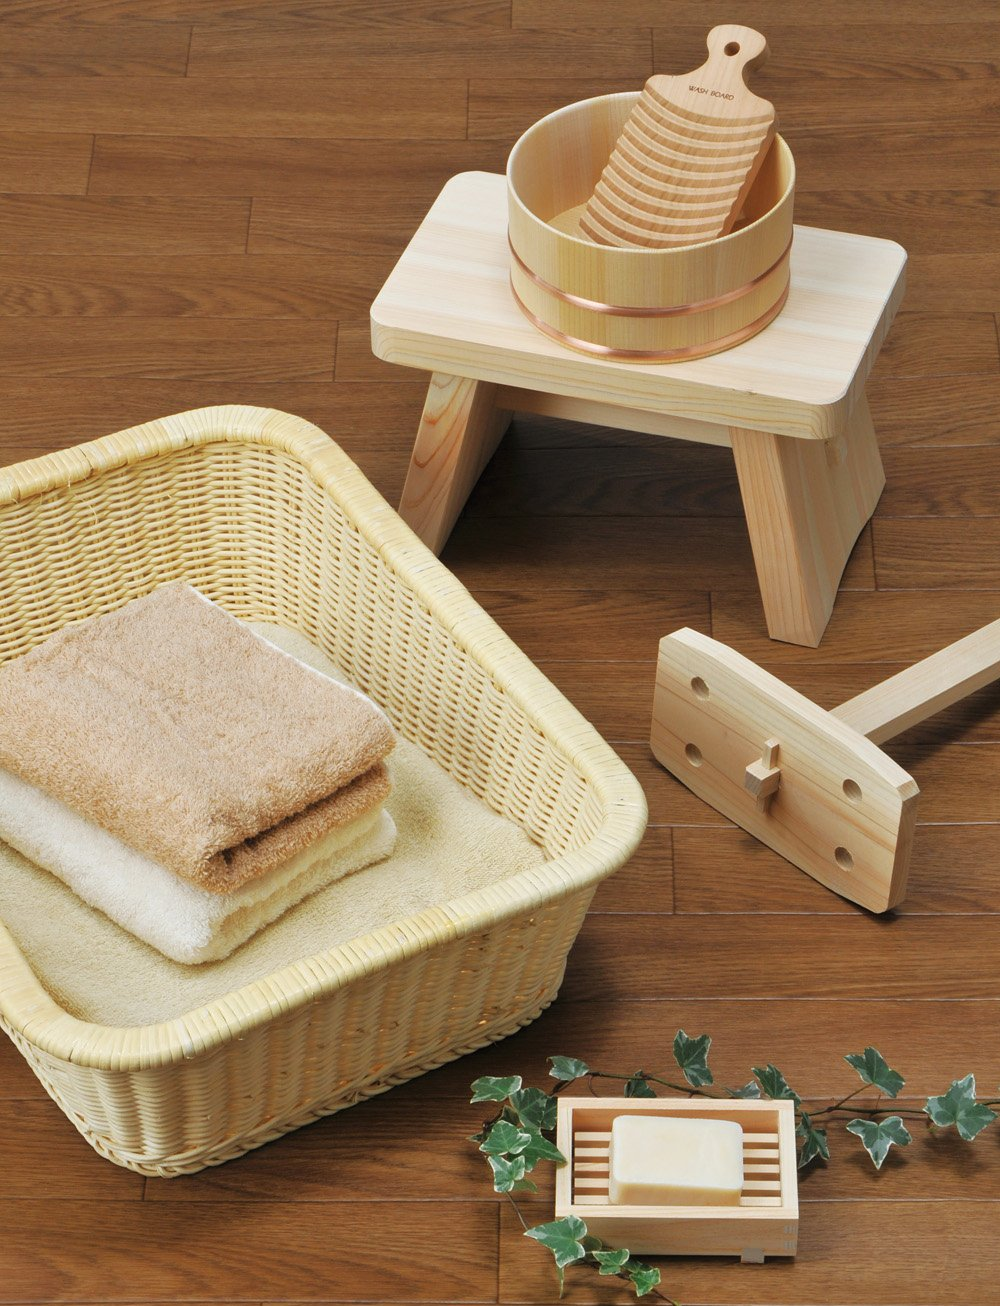 Youbi Made in Japan Hinoki Pure Wood Large Size Bath Stool